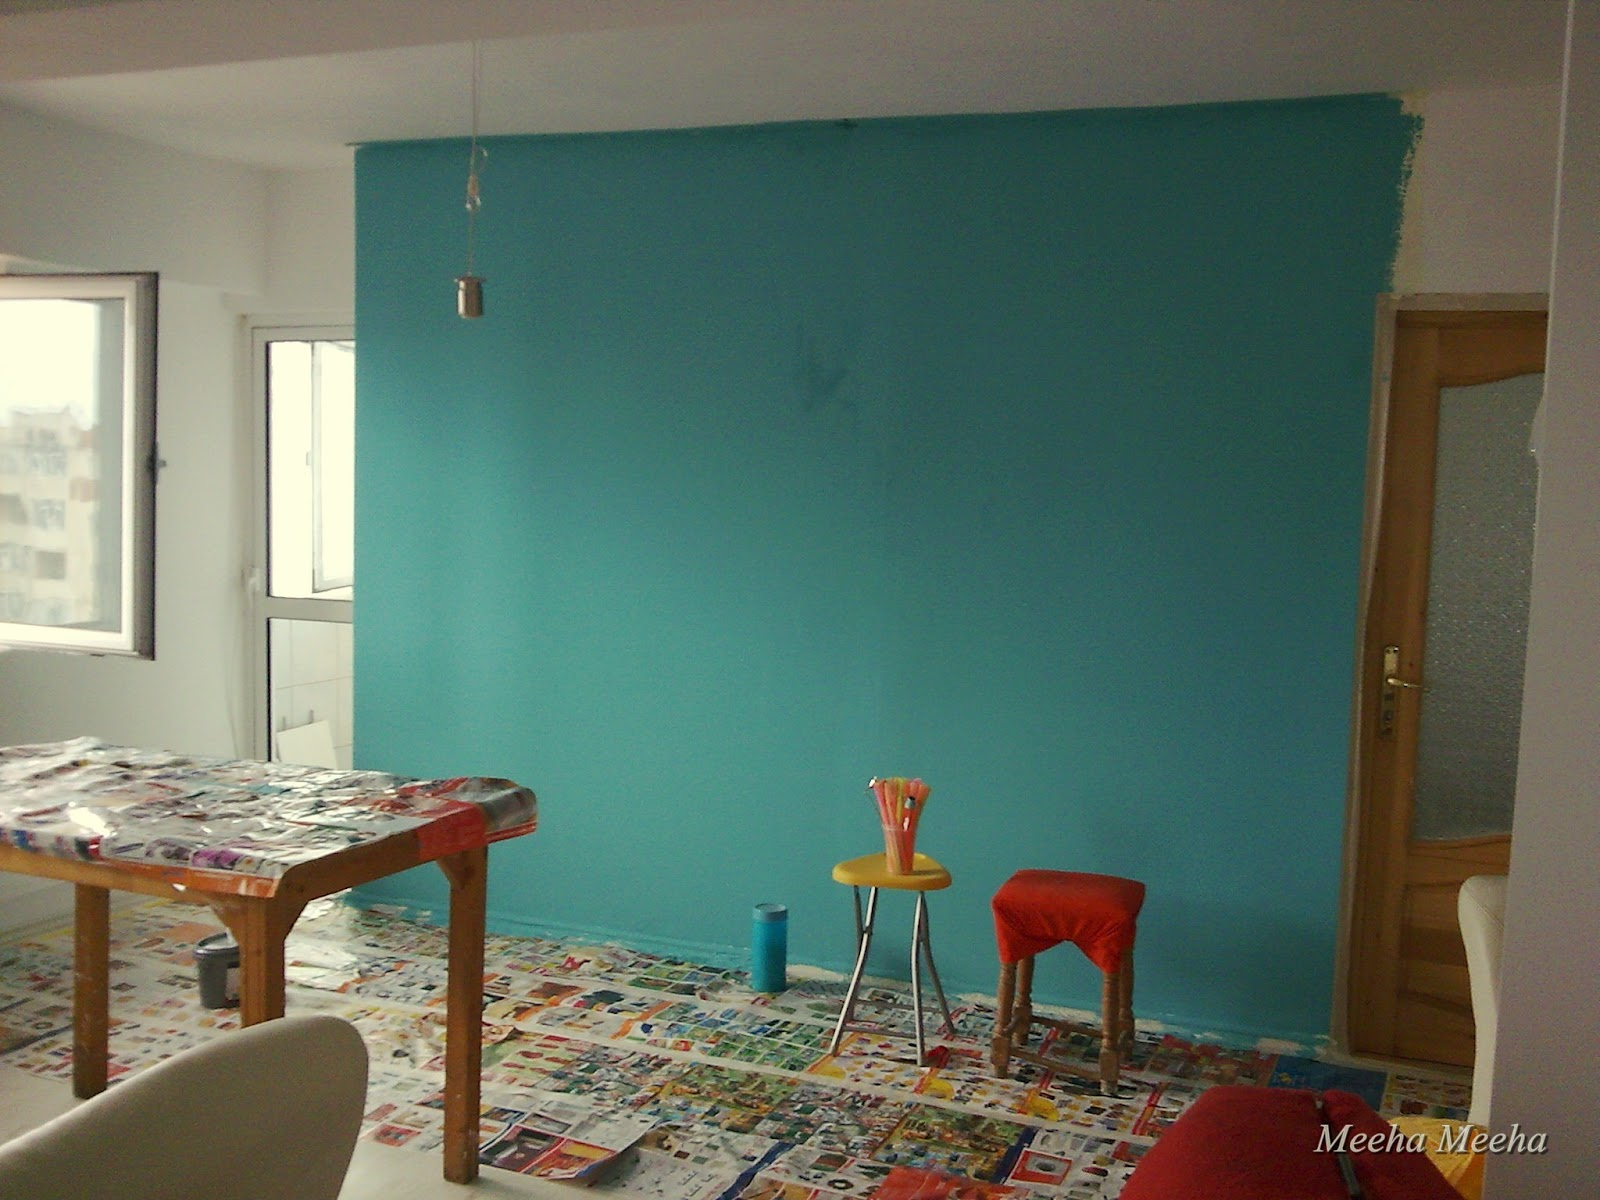 Meeha Meeha: Before and after: Turquoise living room